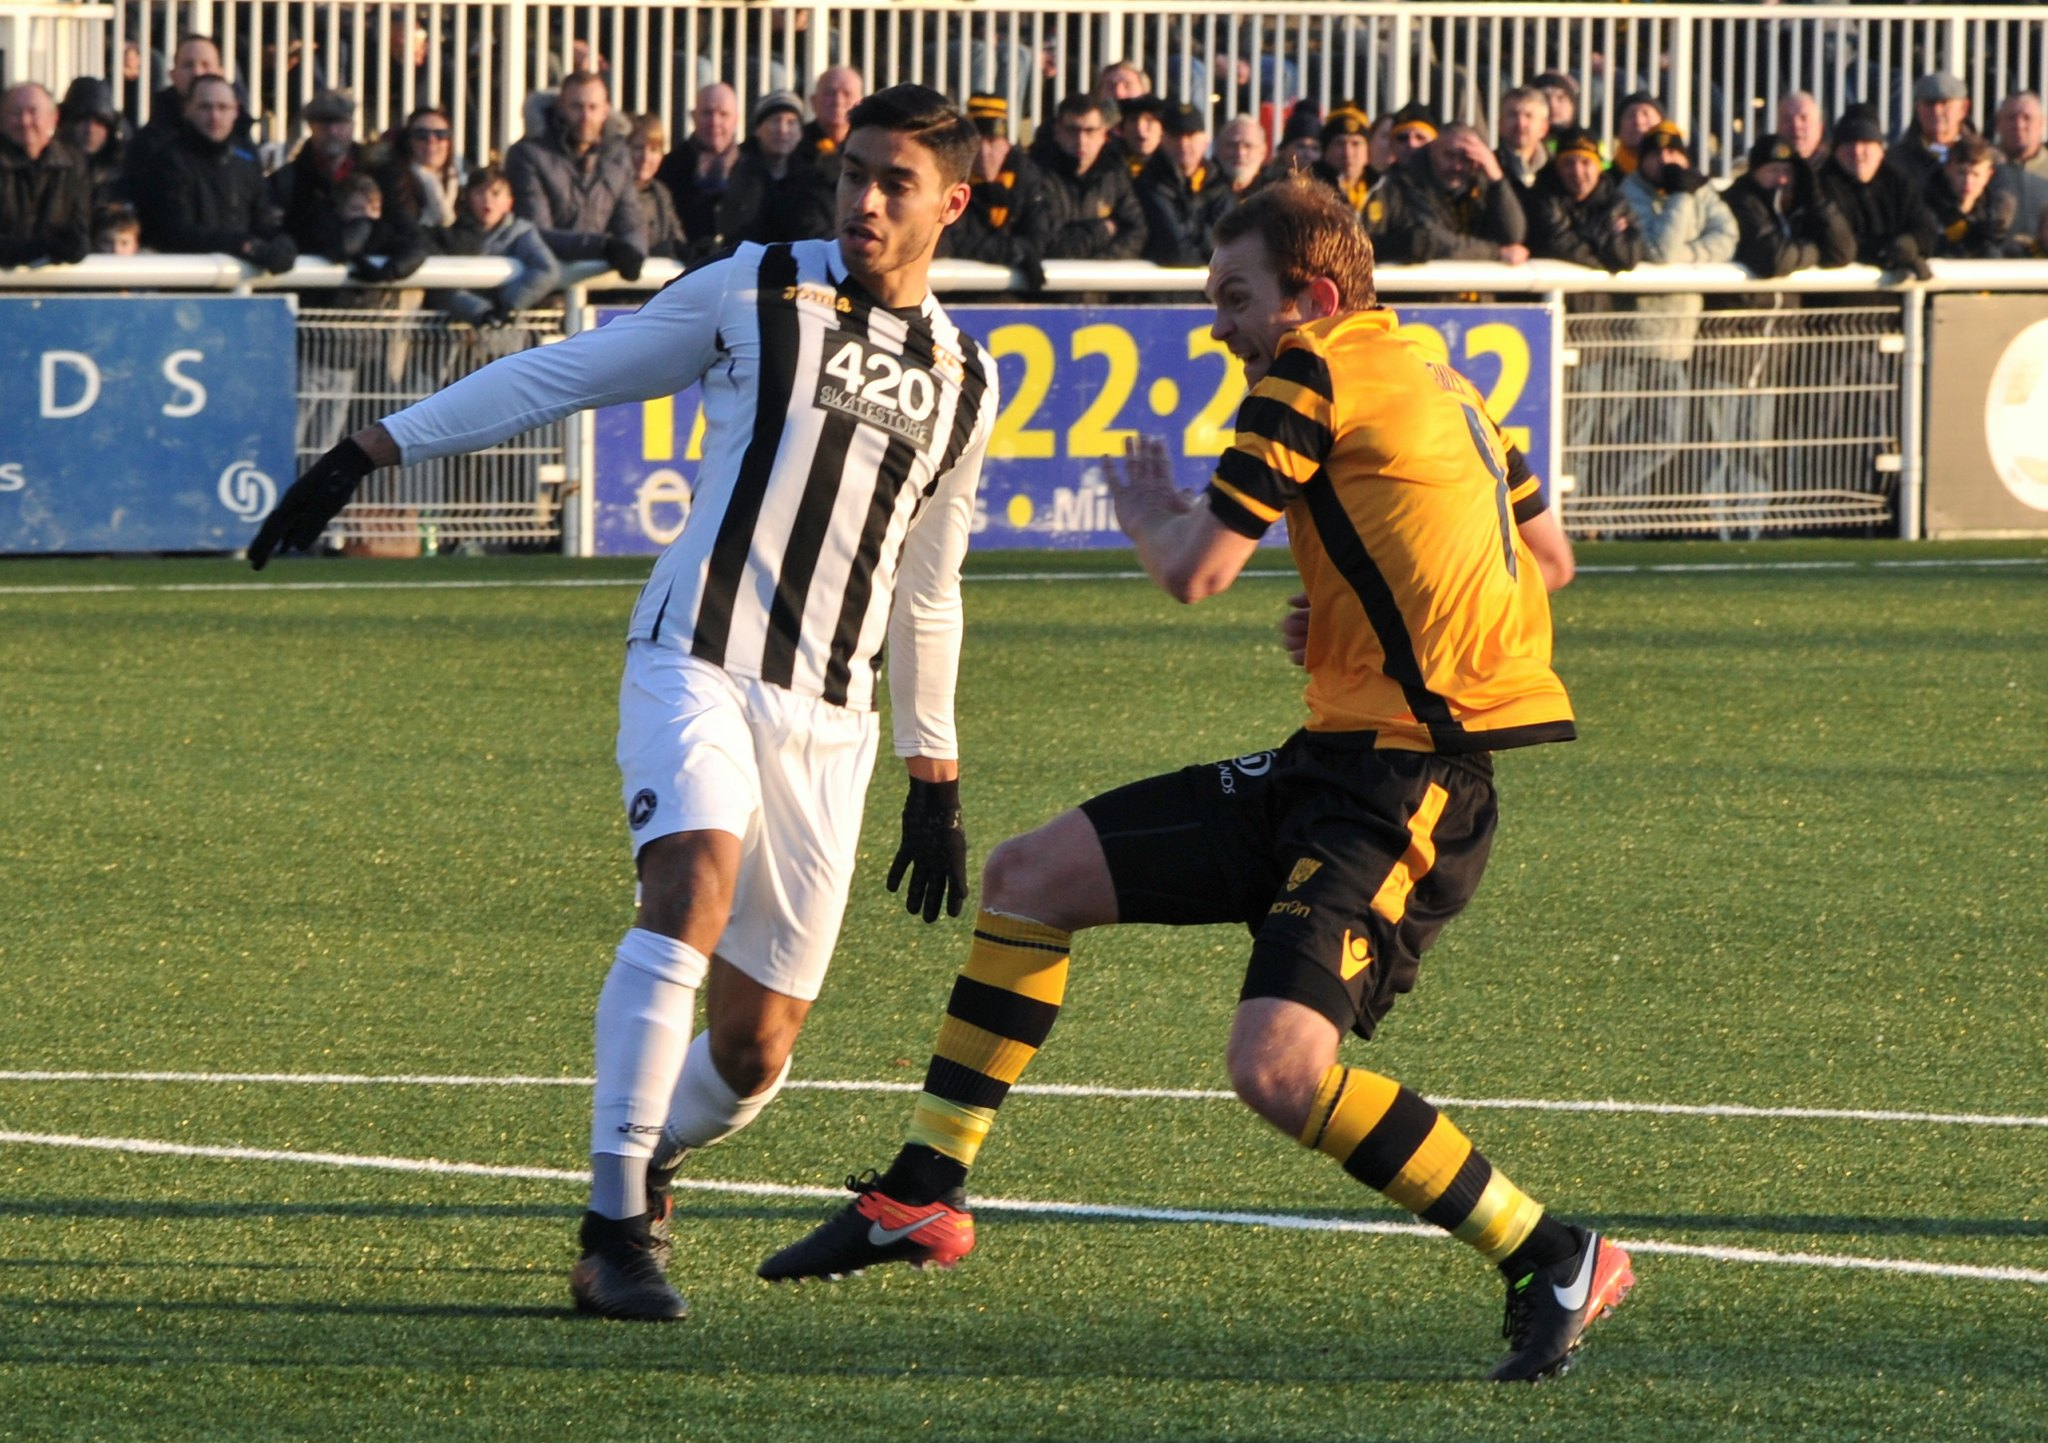 Maidstone United v Torquay United 148